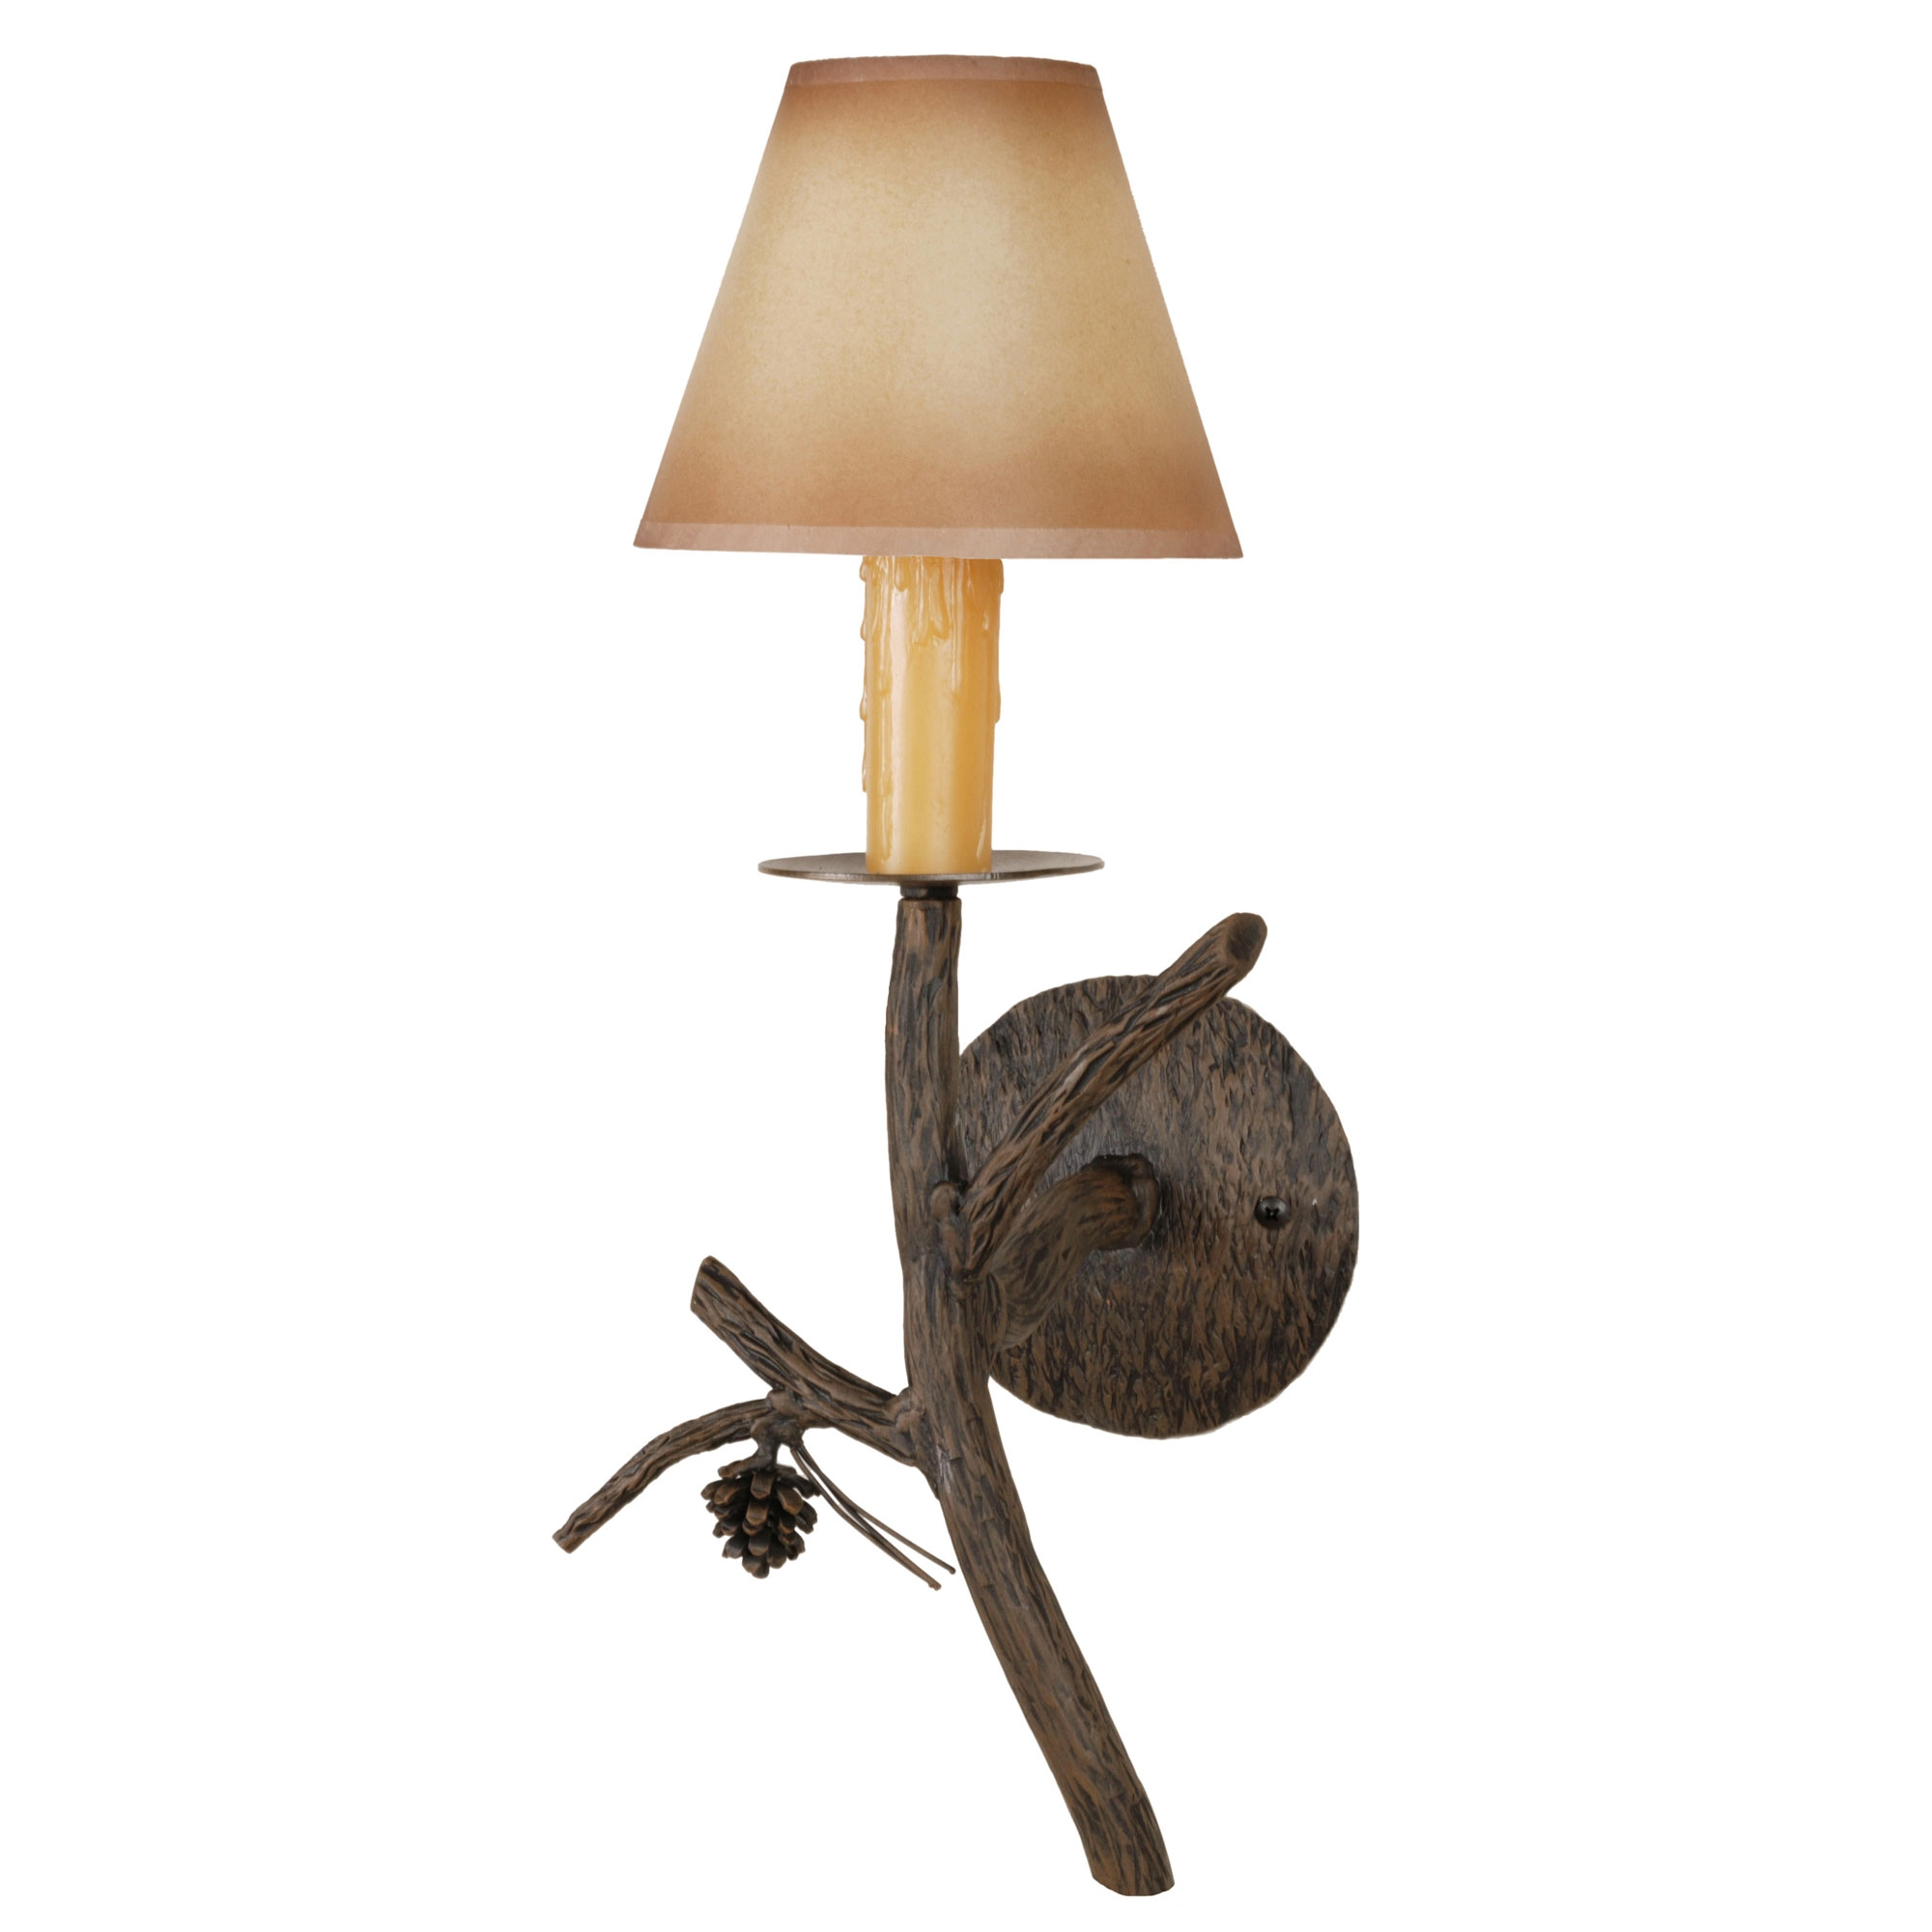 Wall Iron Candle Sconces : Wrought Iron Pine Collection Candle Wall Sconce w/ Candle Drip Cover